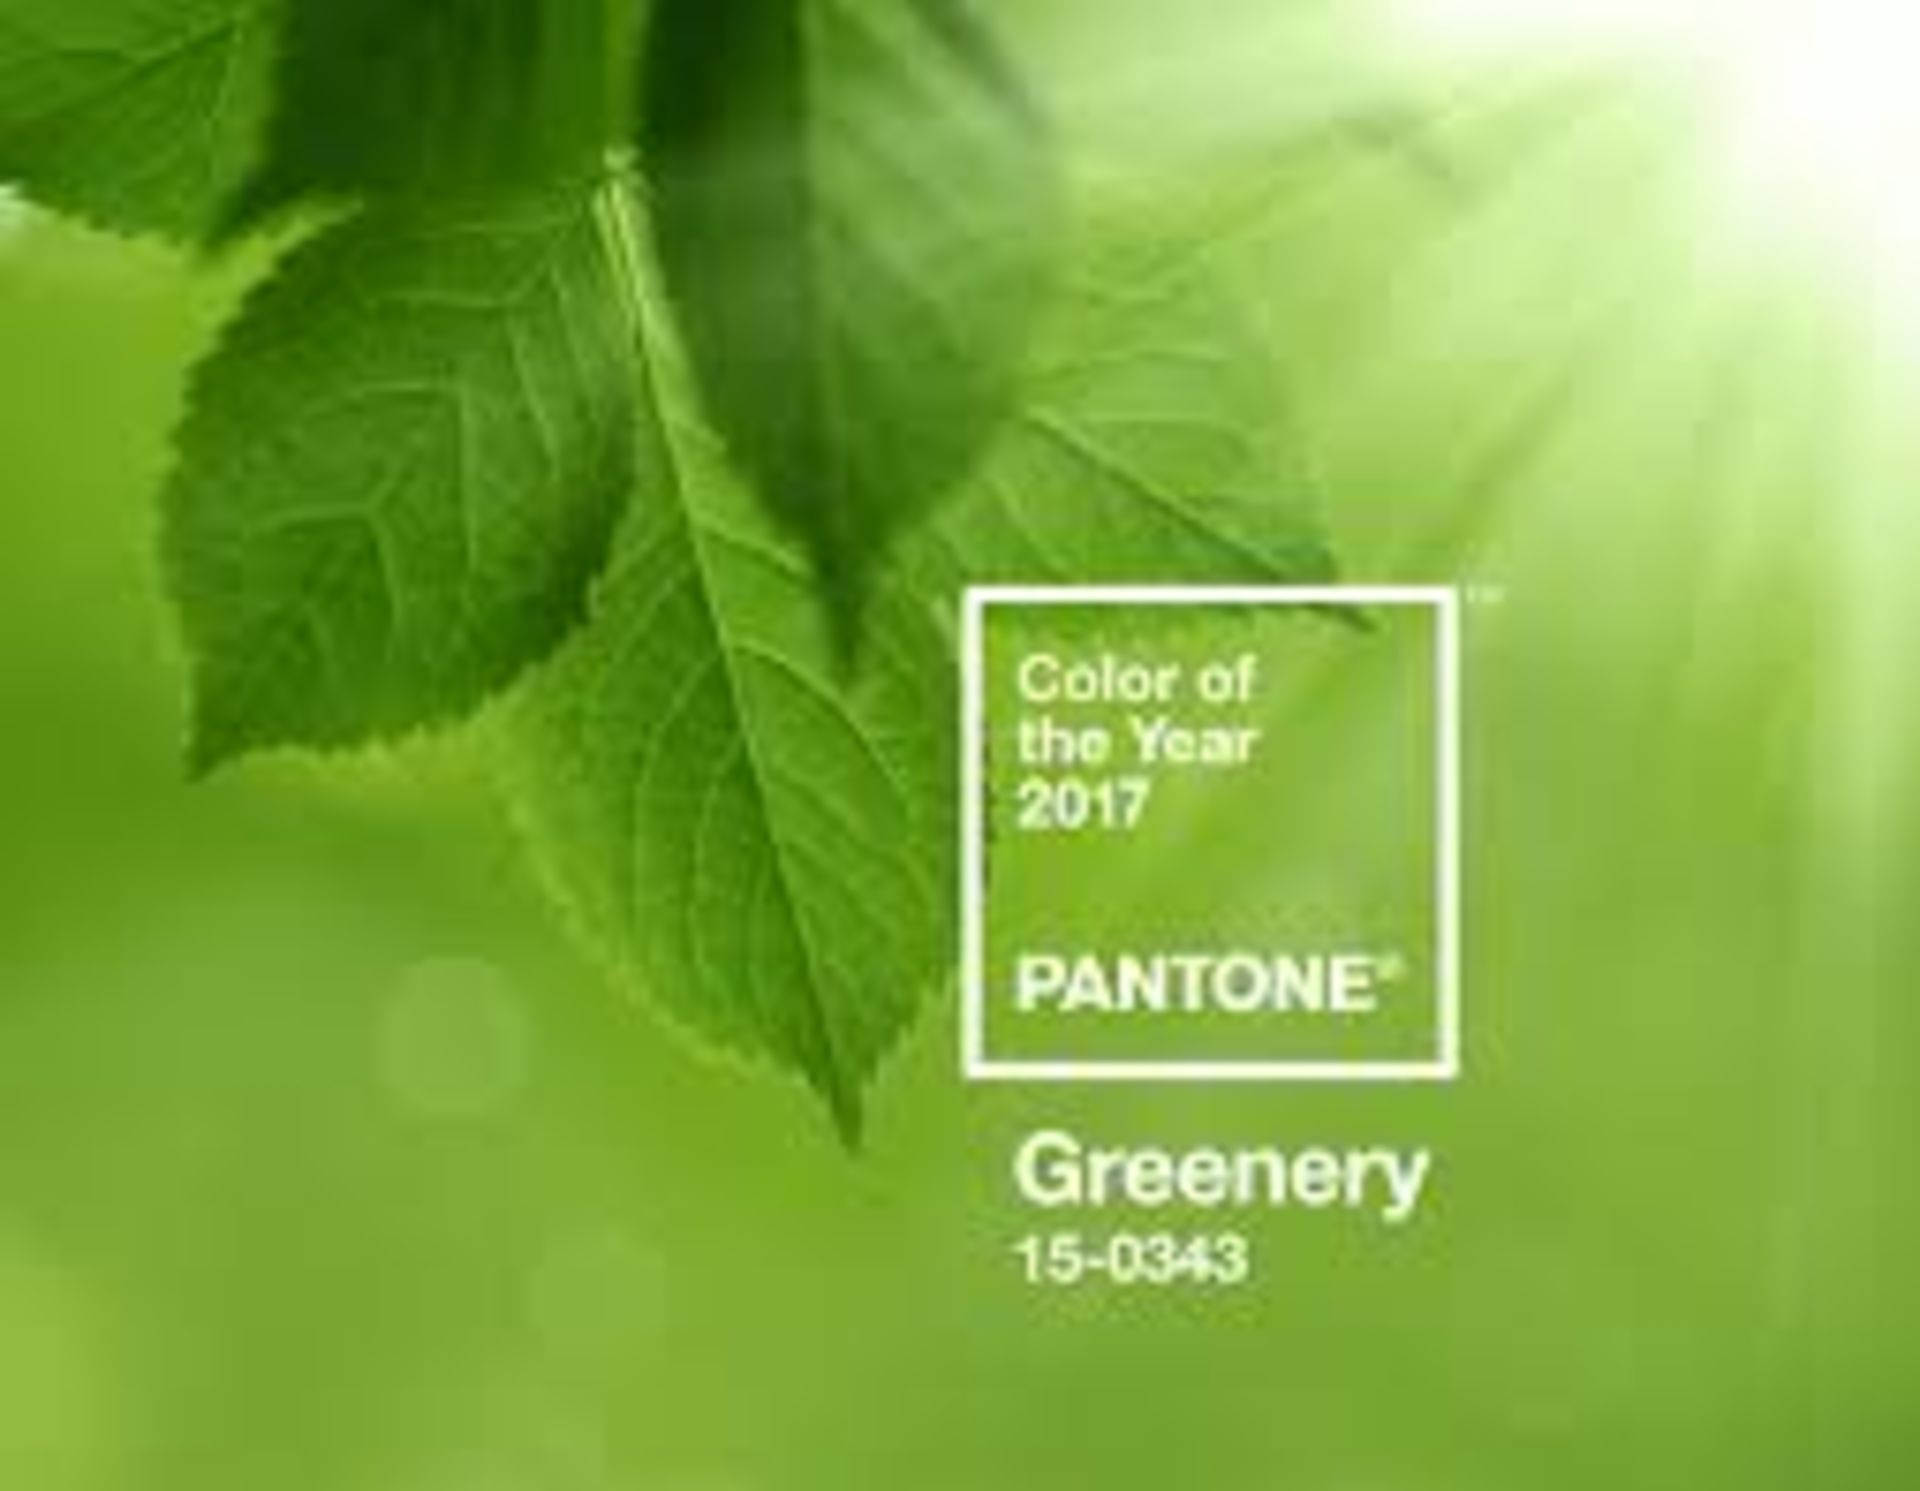 Pantone's Color of the Year and How to Use It